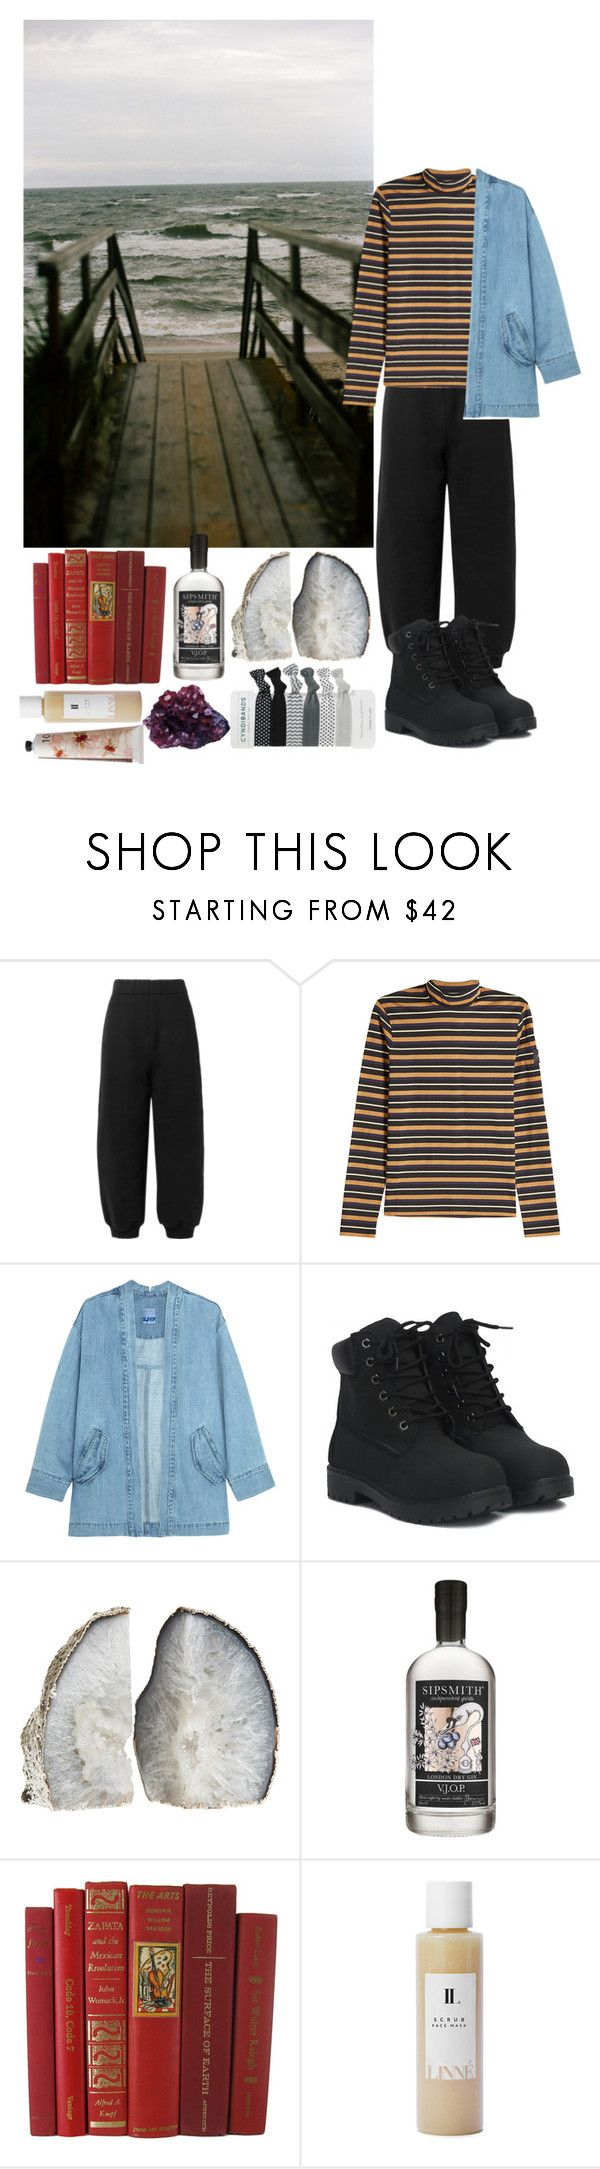 Untitled #445 by danielagreg on Polyvore featuring Steve J & Yoni P, T By Alexander Wang, STELLA McCARTNEY, Linne, TokyoMilk, Sipsmith and DK